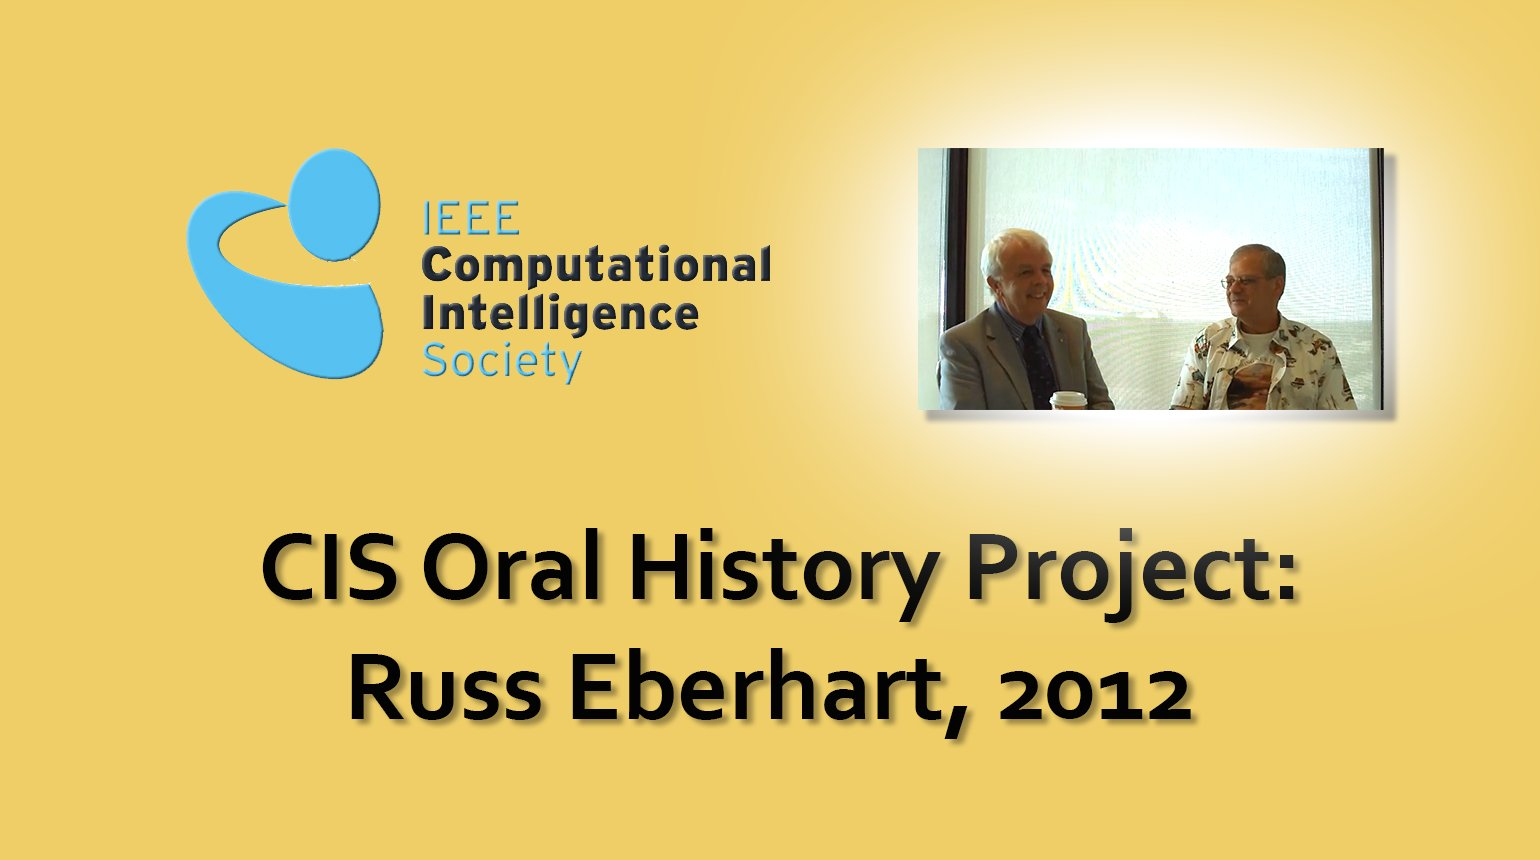 Interview with Russ Eberhart, 2012: CIS Oral History Project